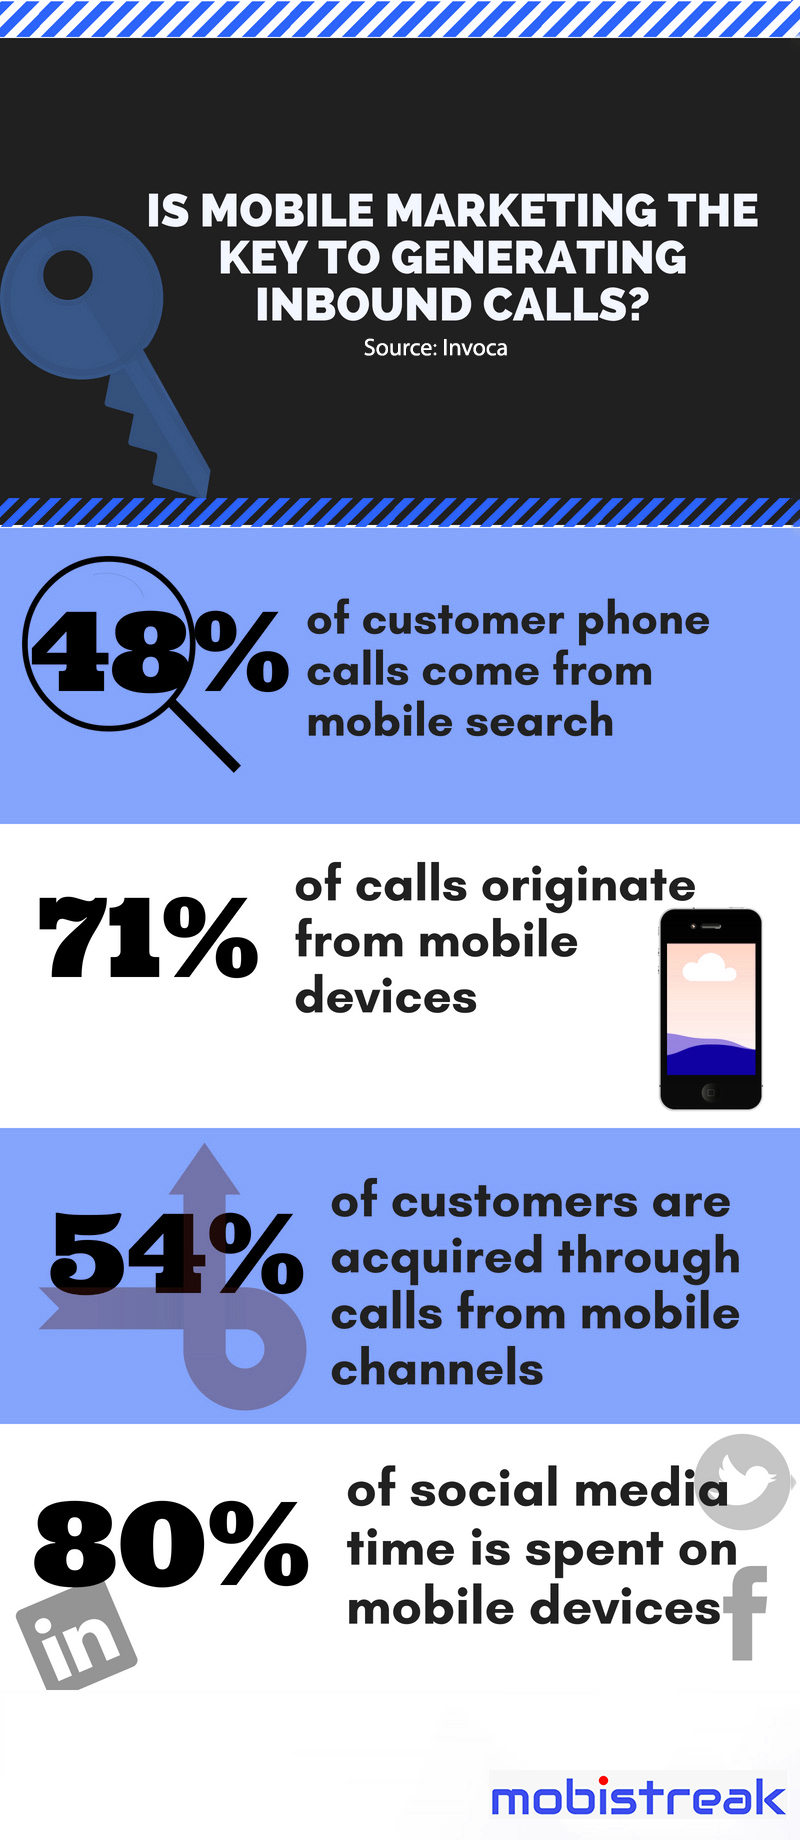 Is mobile marketing the key to generating inbound calls?